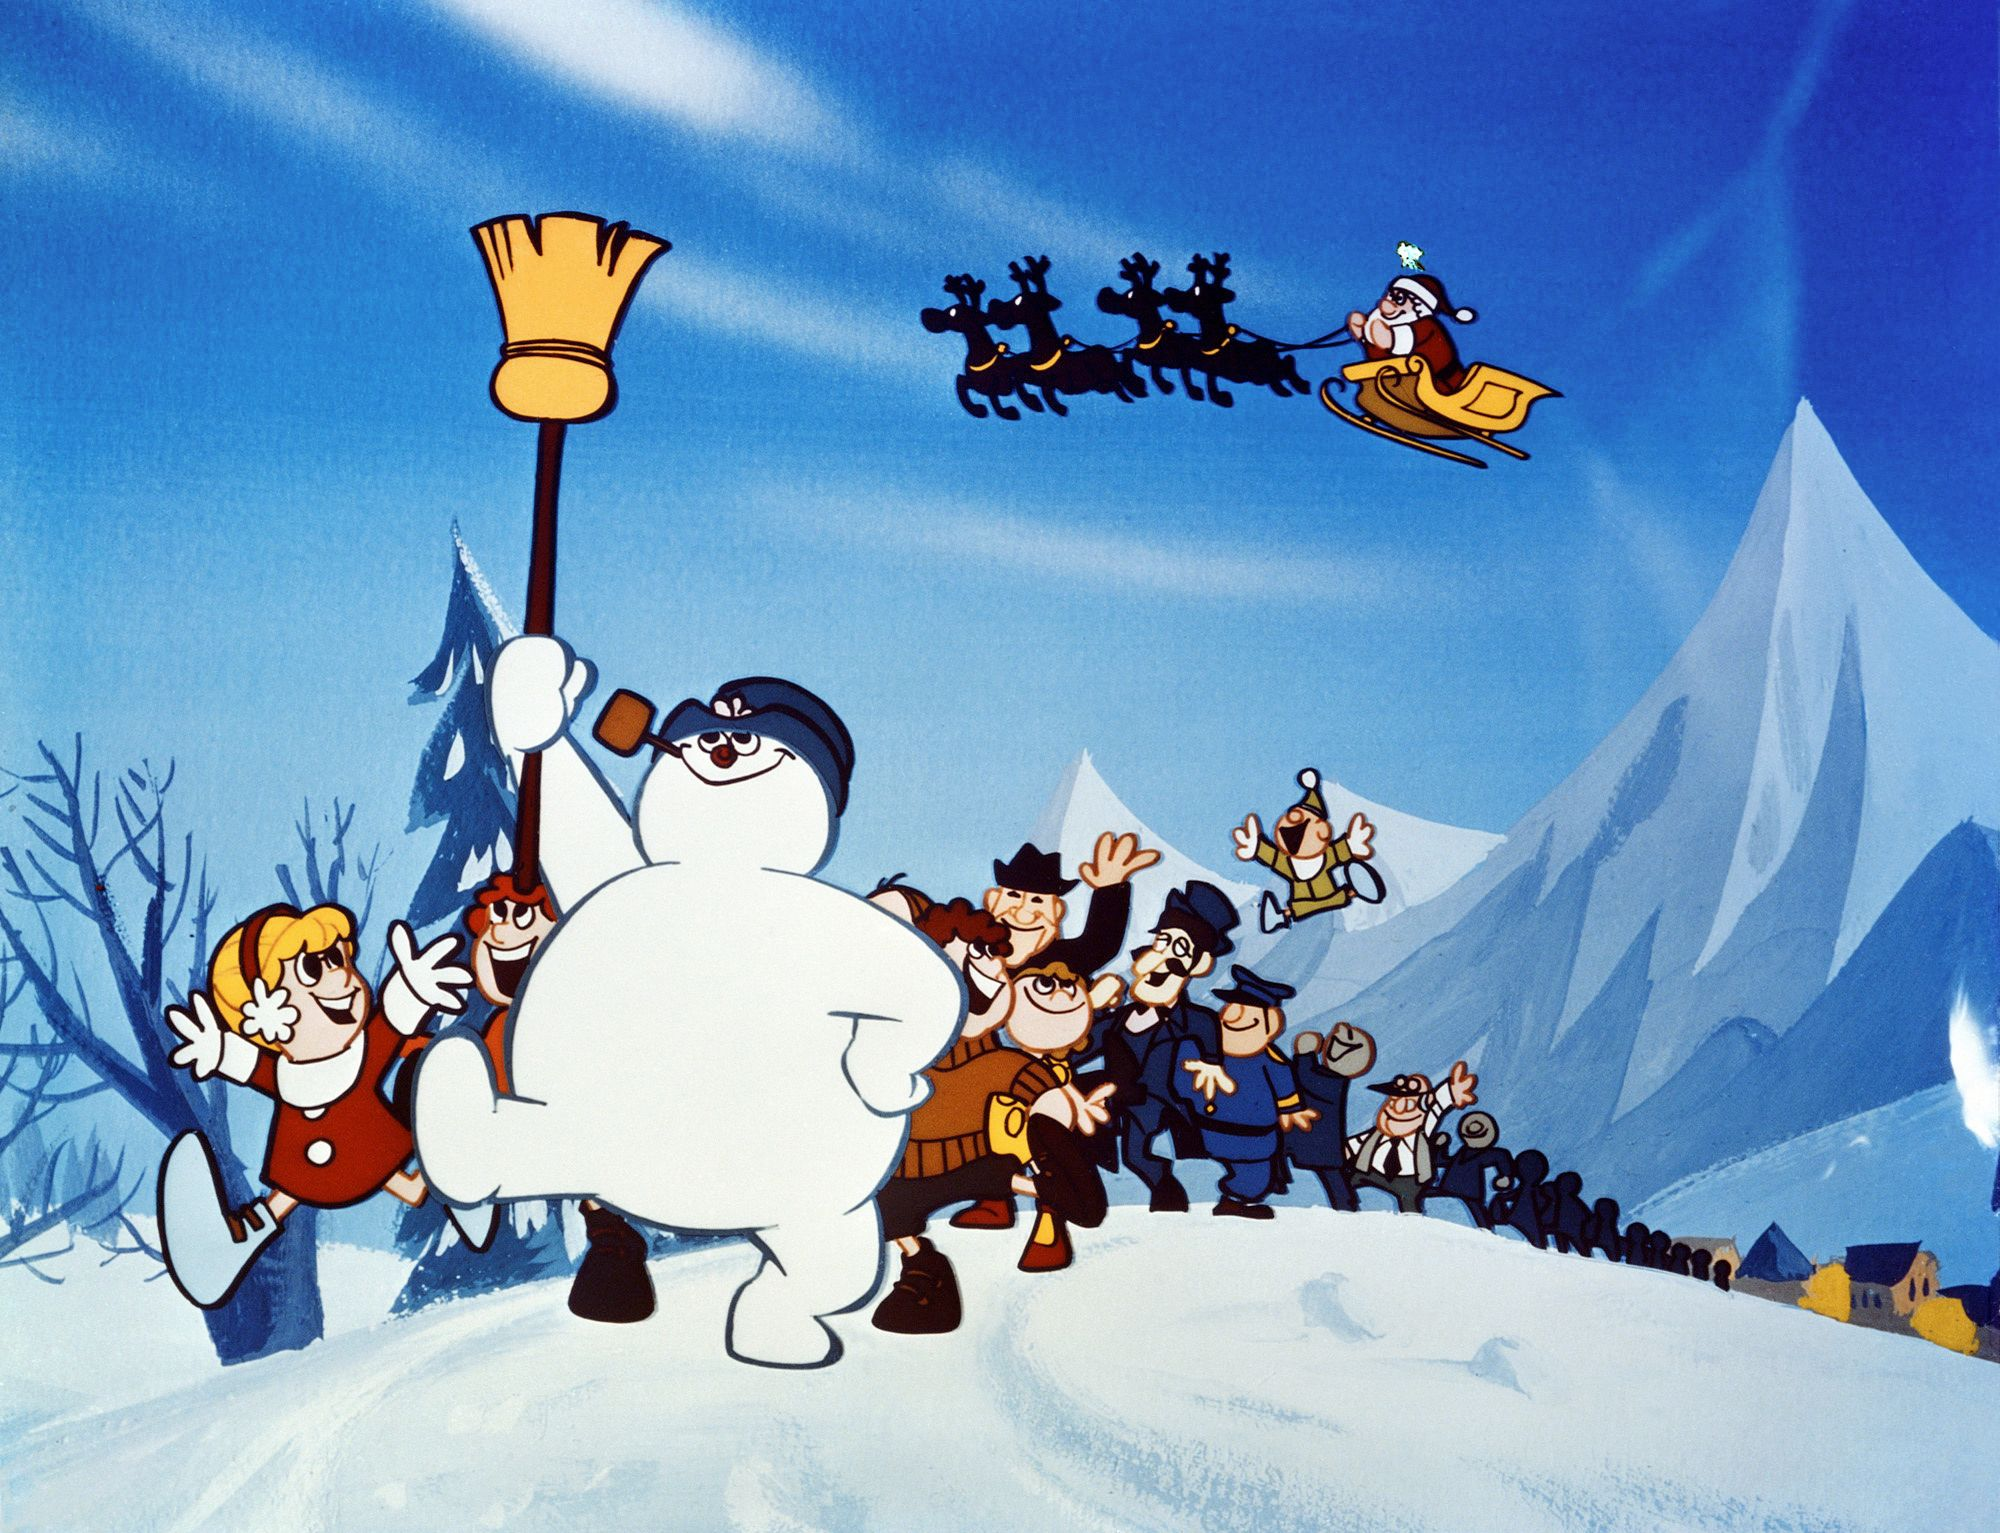 Frosty the Snowman leads a line of villagers